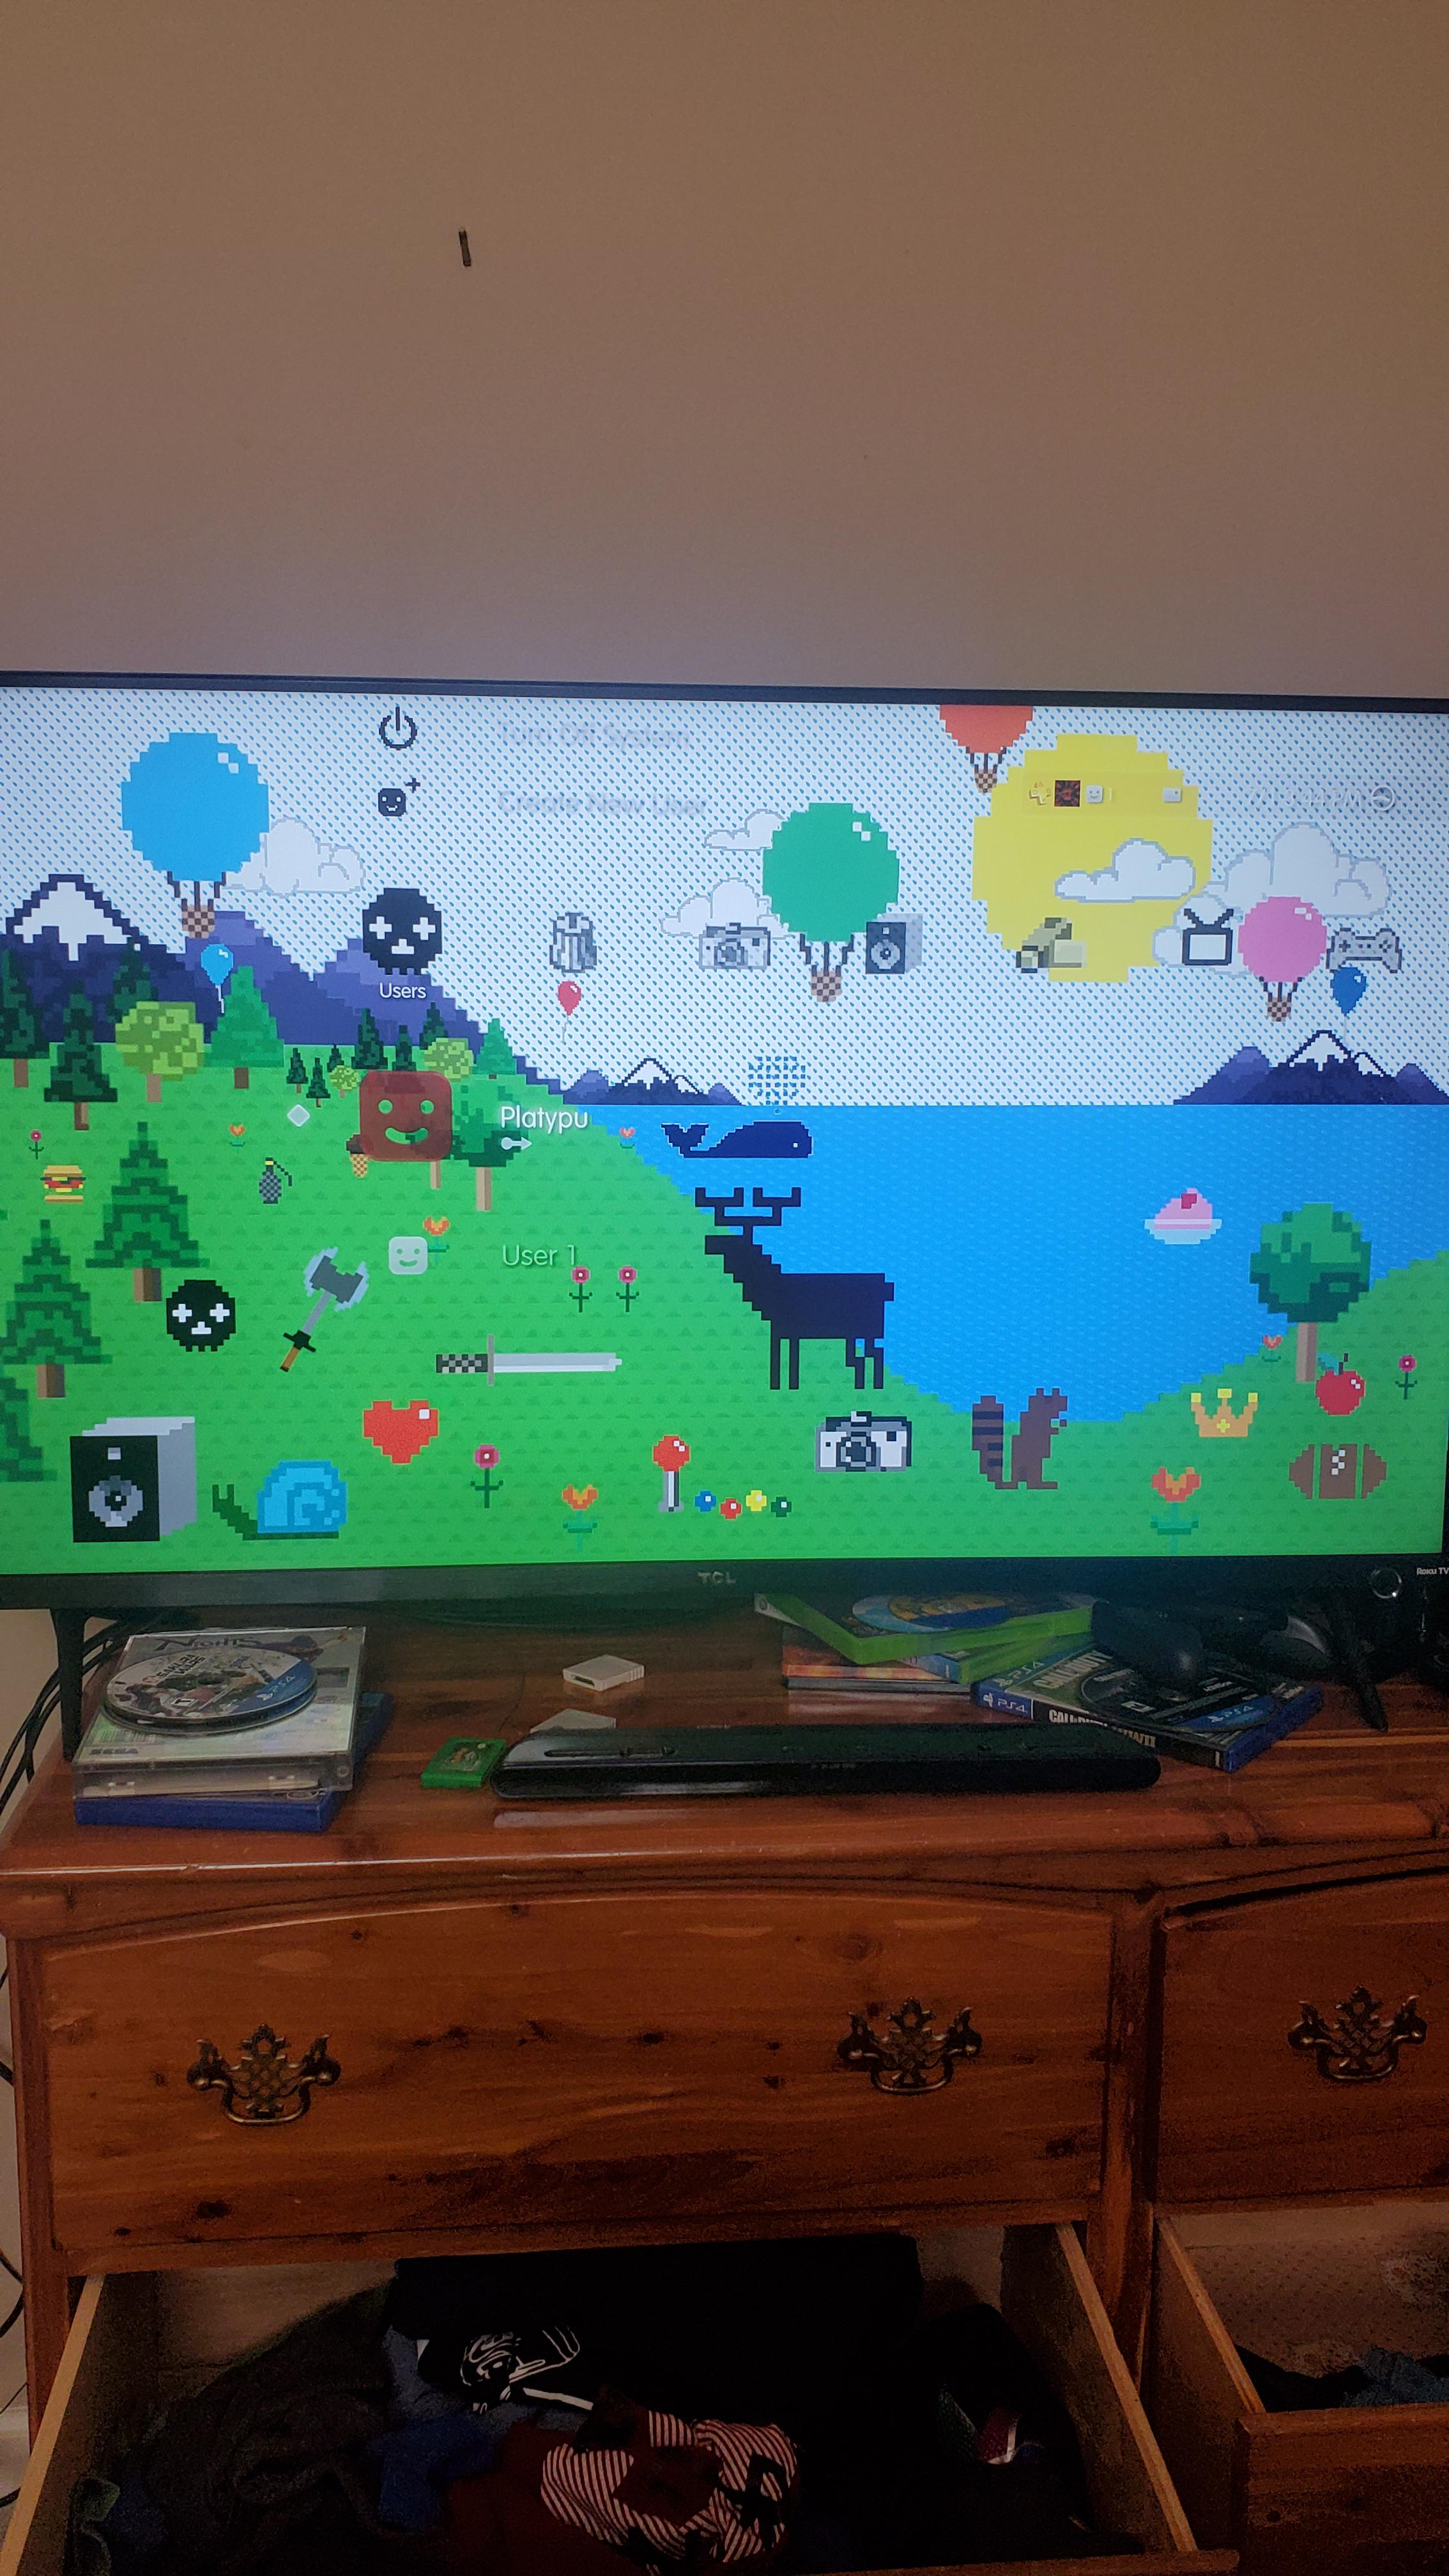 Ps3 Themes : themes, Absolute, Favorite, Theme,, Pixel, Wonderland!, Welcome, Package, 2011!